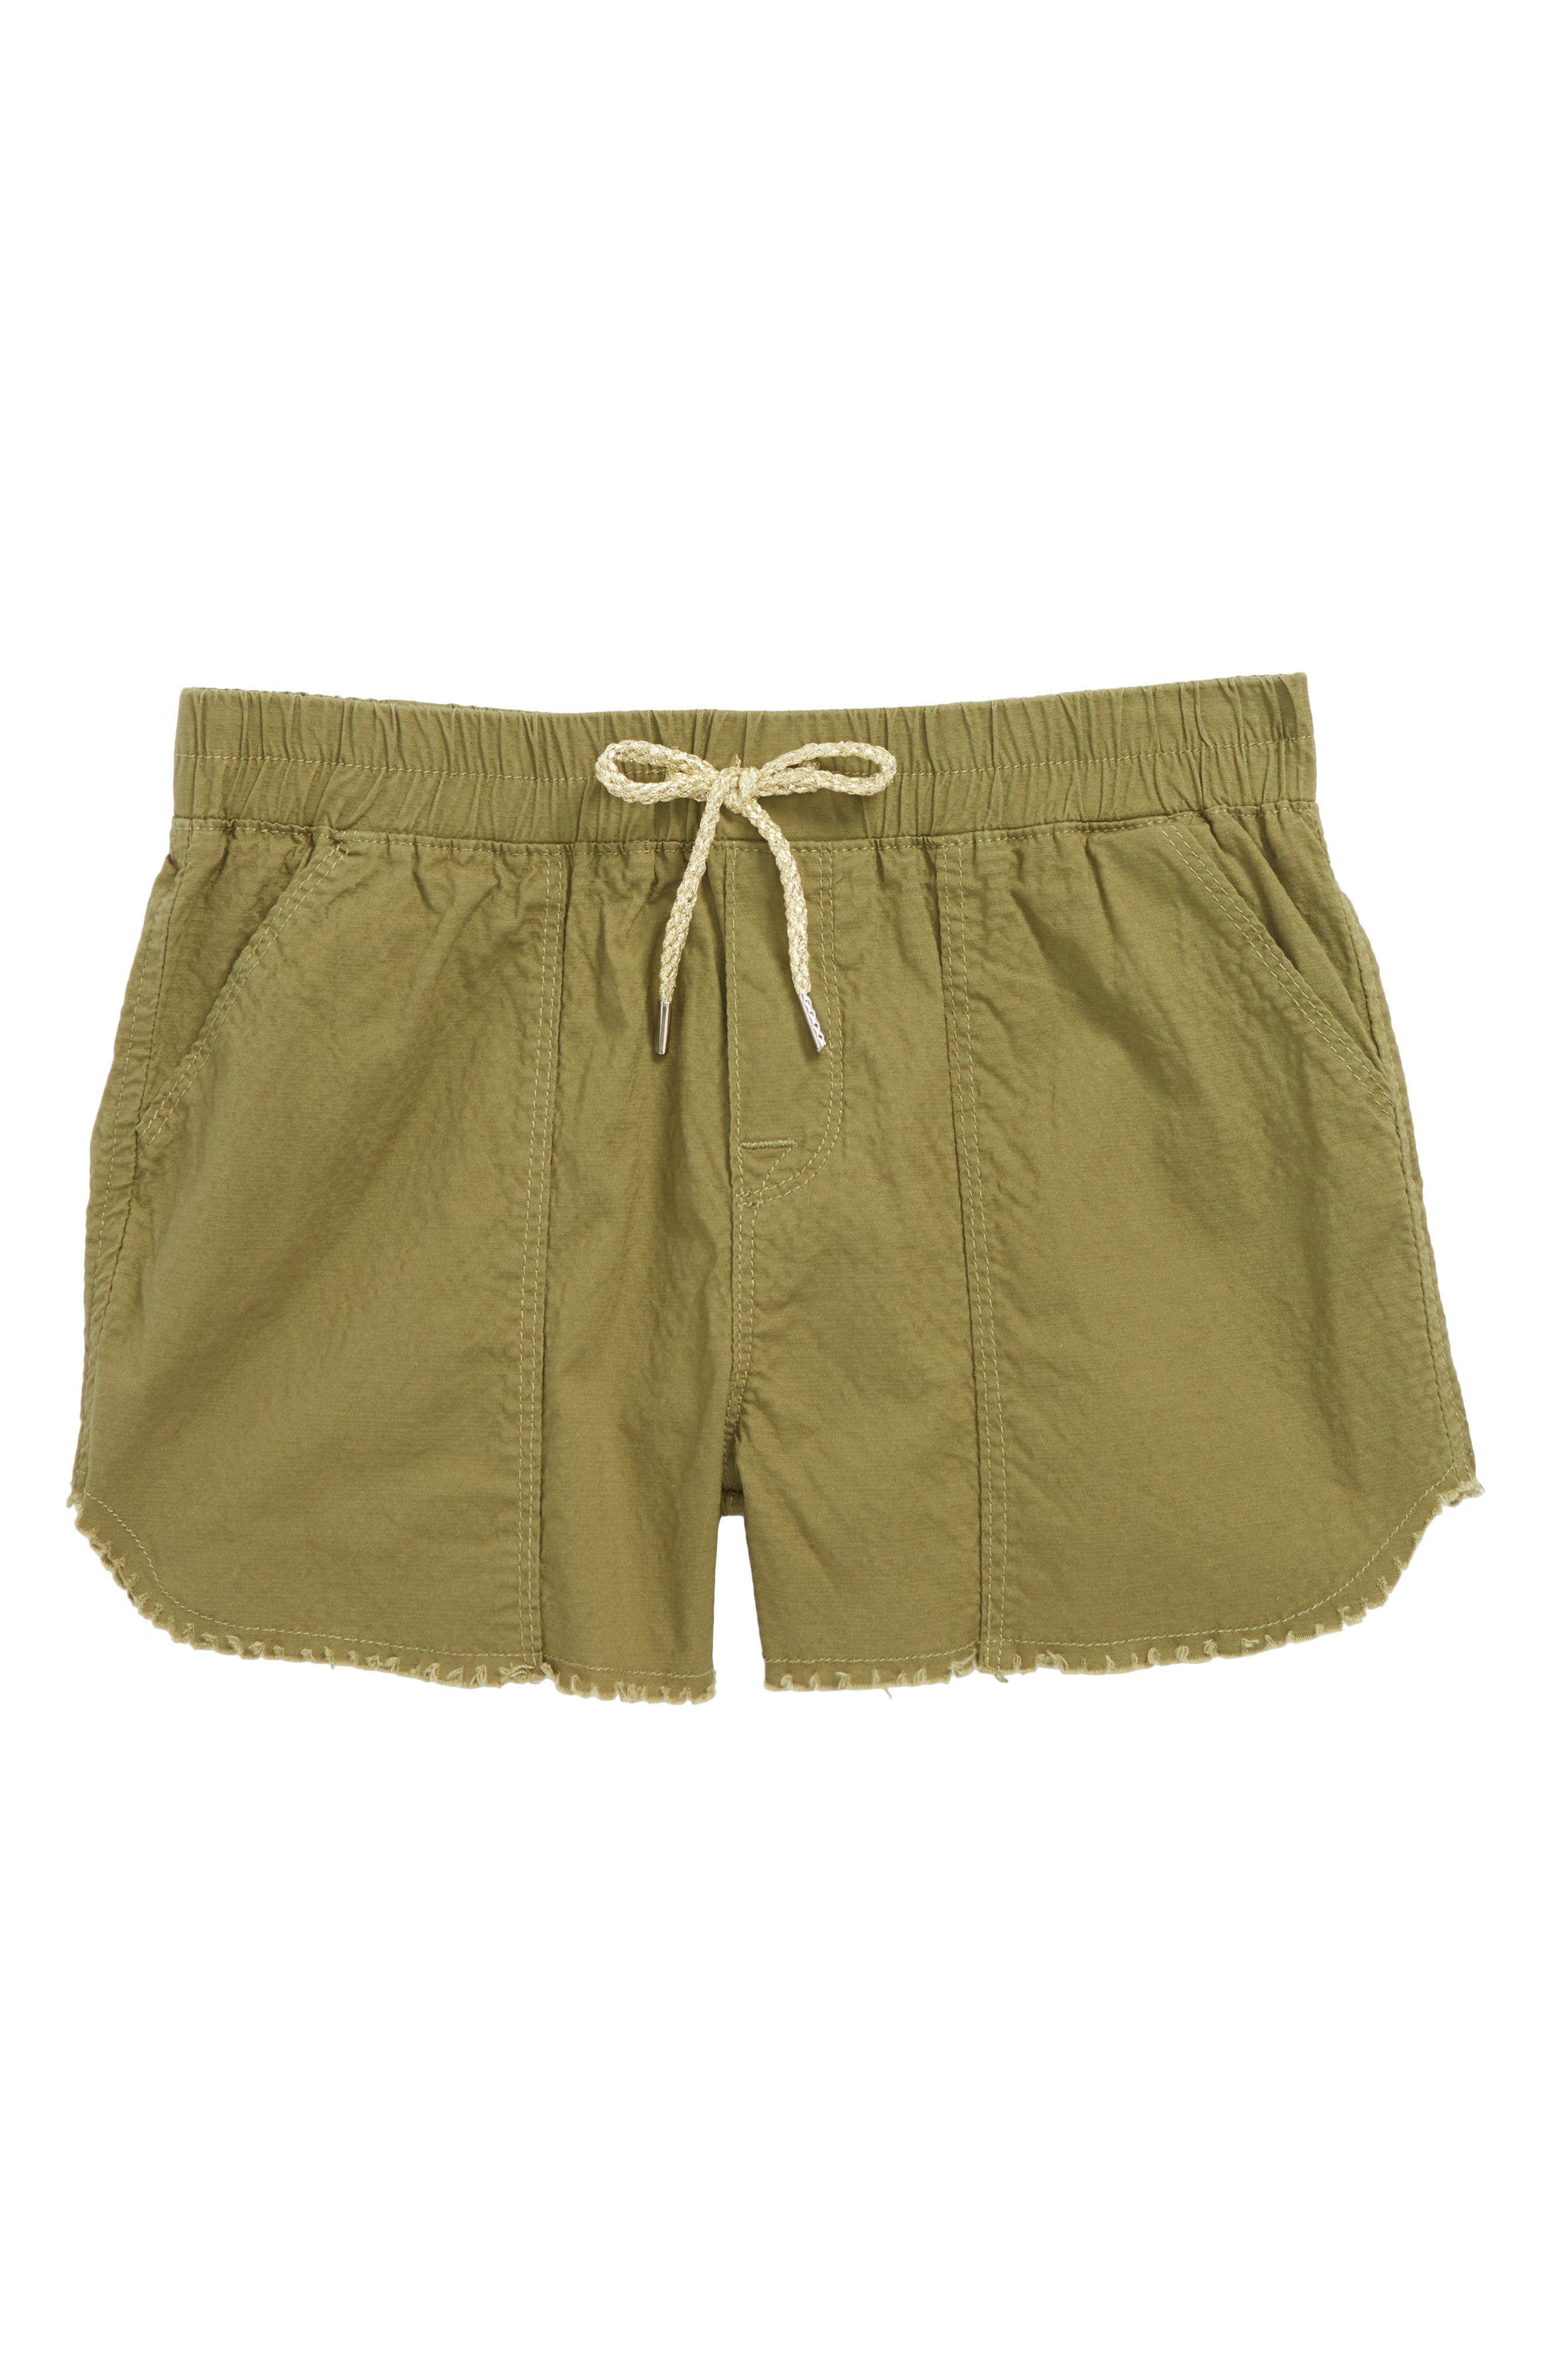 Surplus Chambray Shorts,                         Main,                         color, Faded Olive